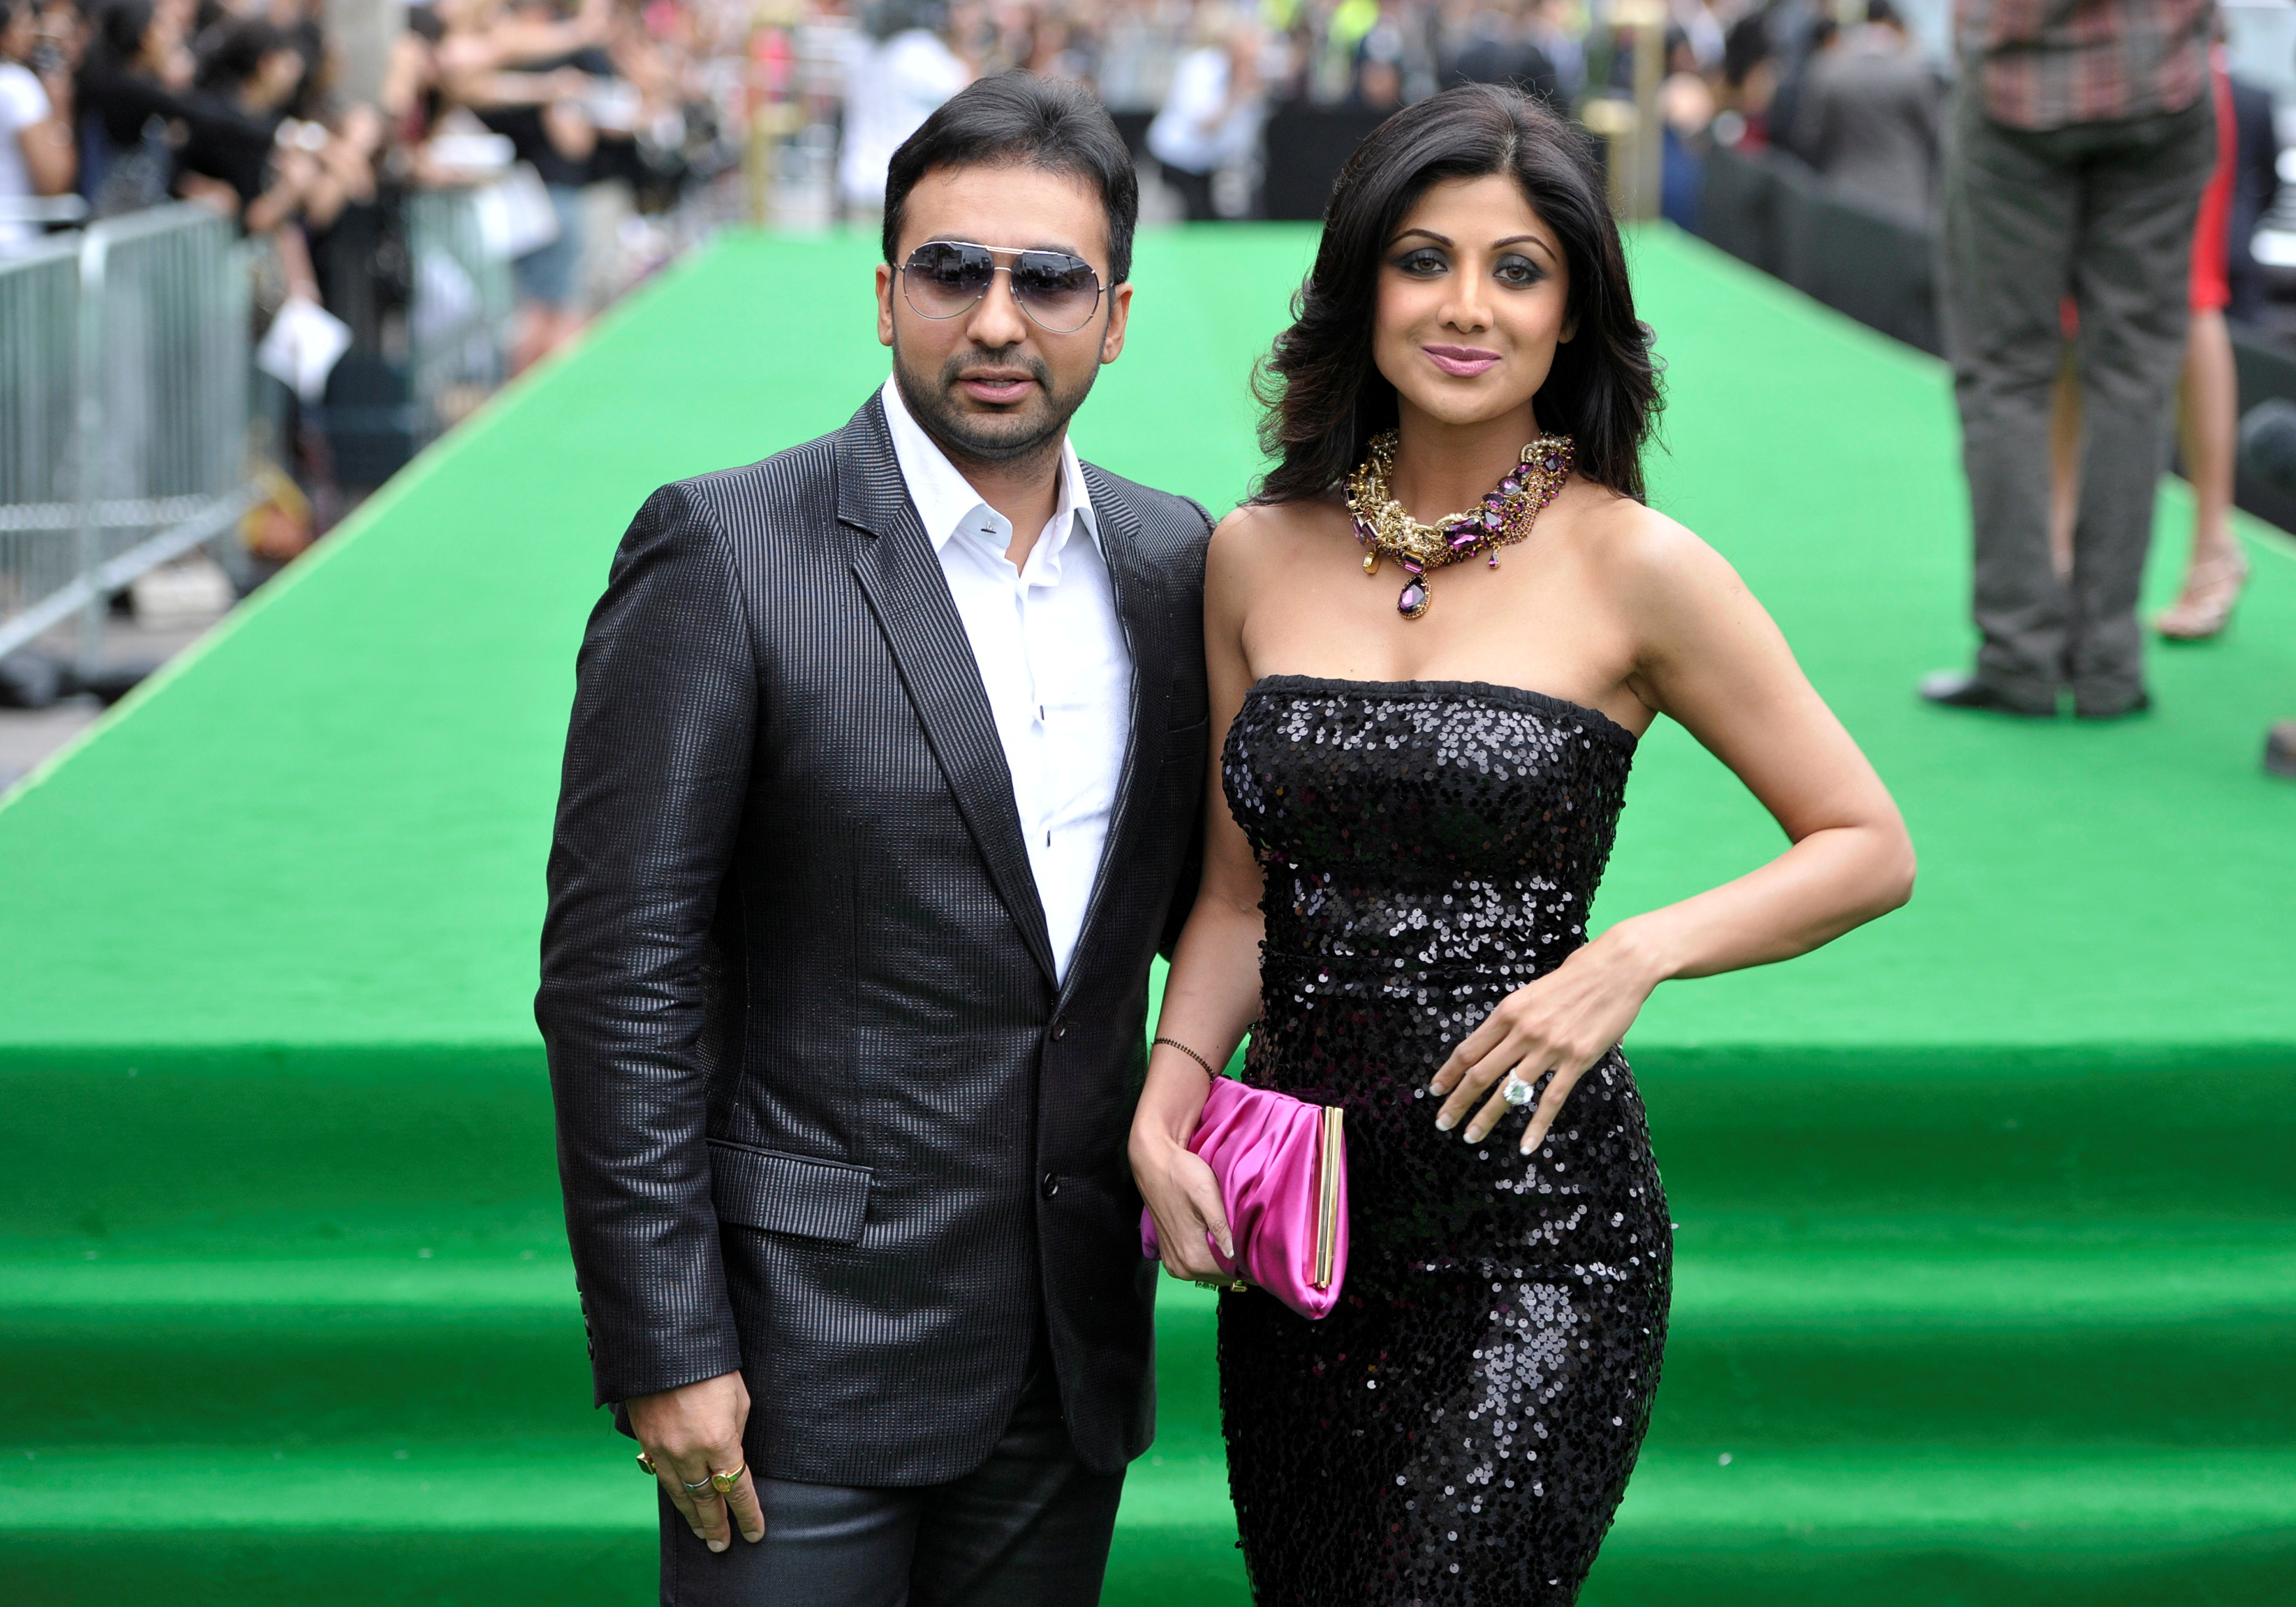 Bollywood actress Shilpa Shetty and husband Raj Kundra (R) arrive on the green carpet during the International Indian Film Academy (IIFA) Awards in Toronto June 25, 2011. REUTERS/Mike Cassese